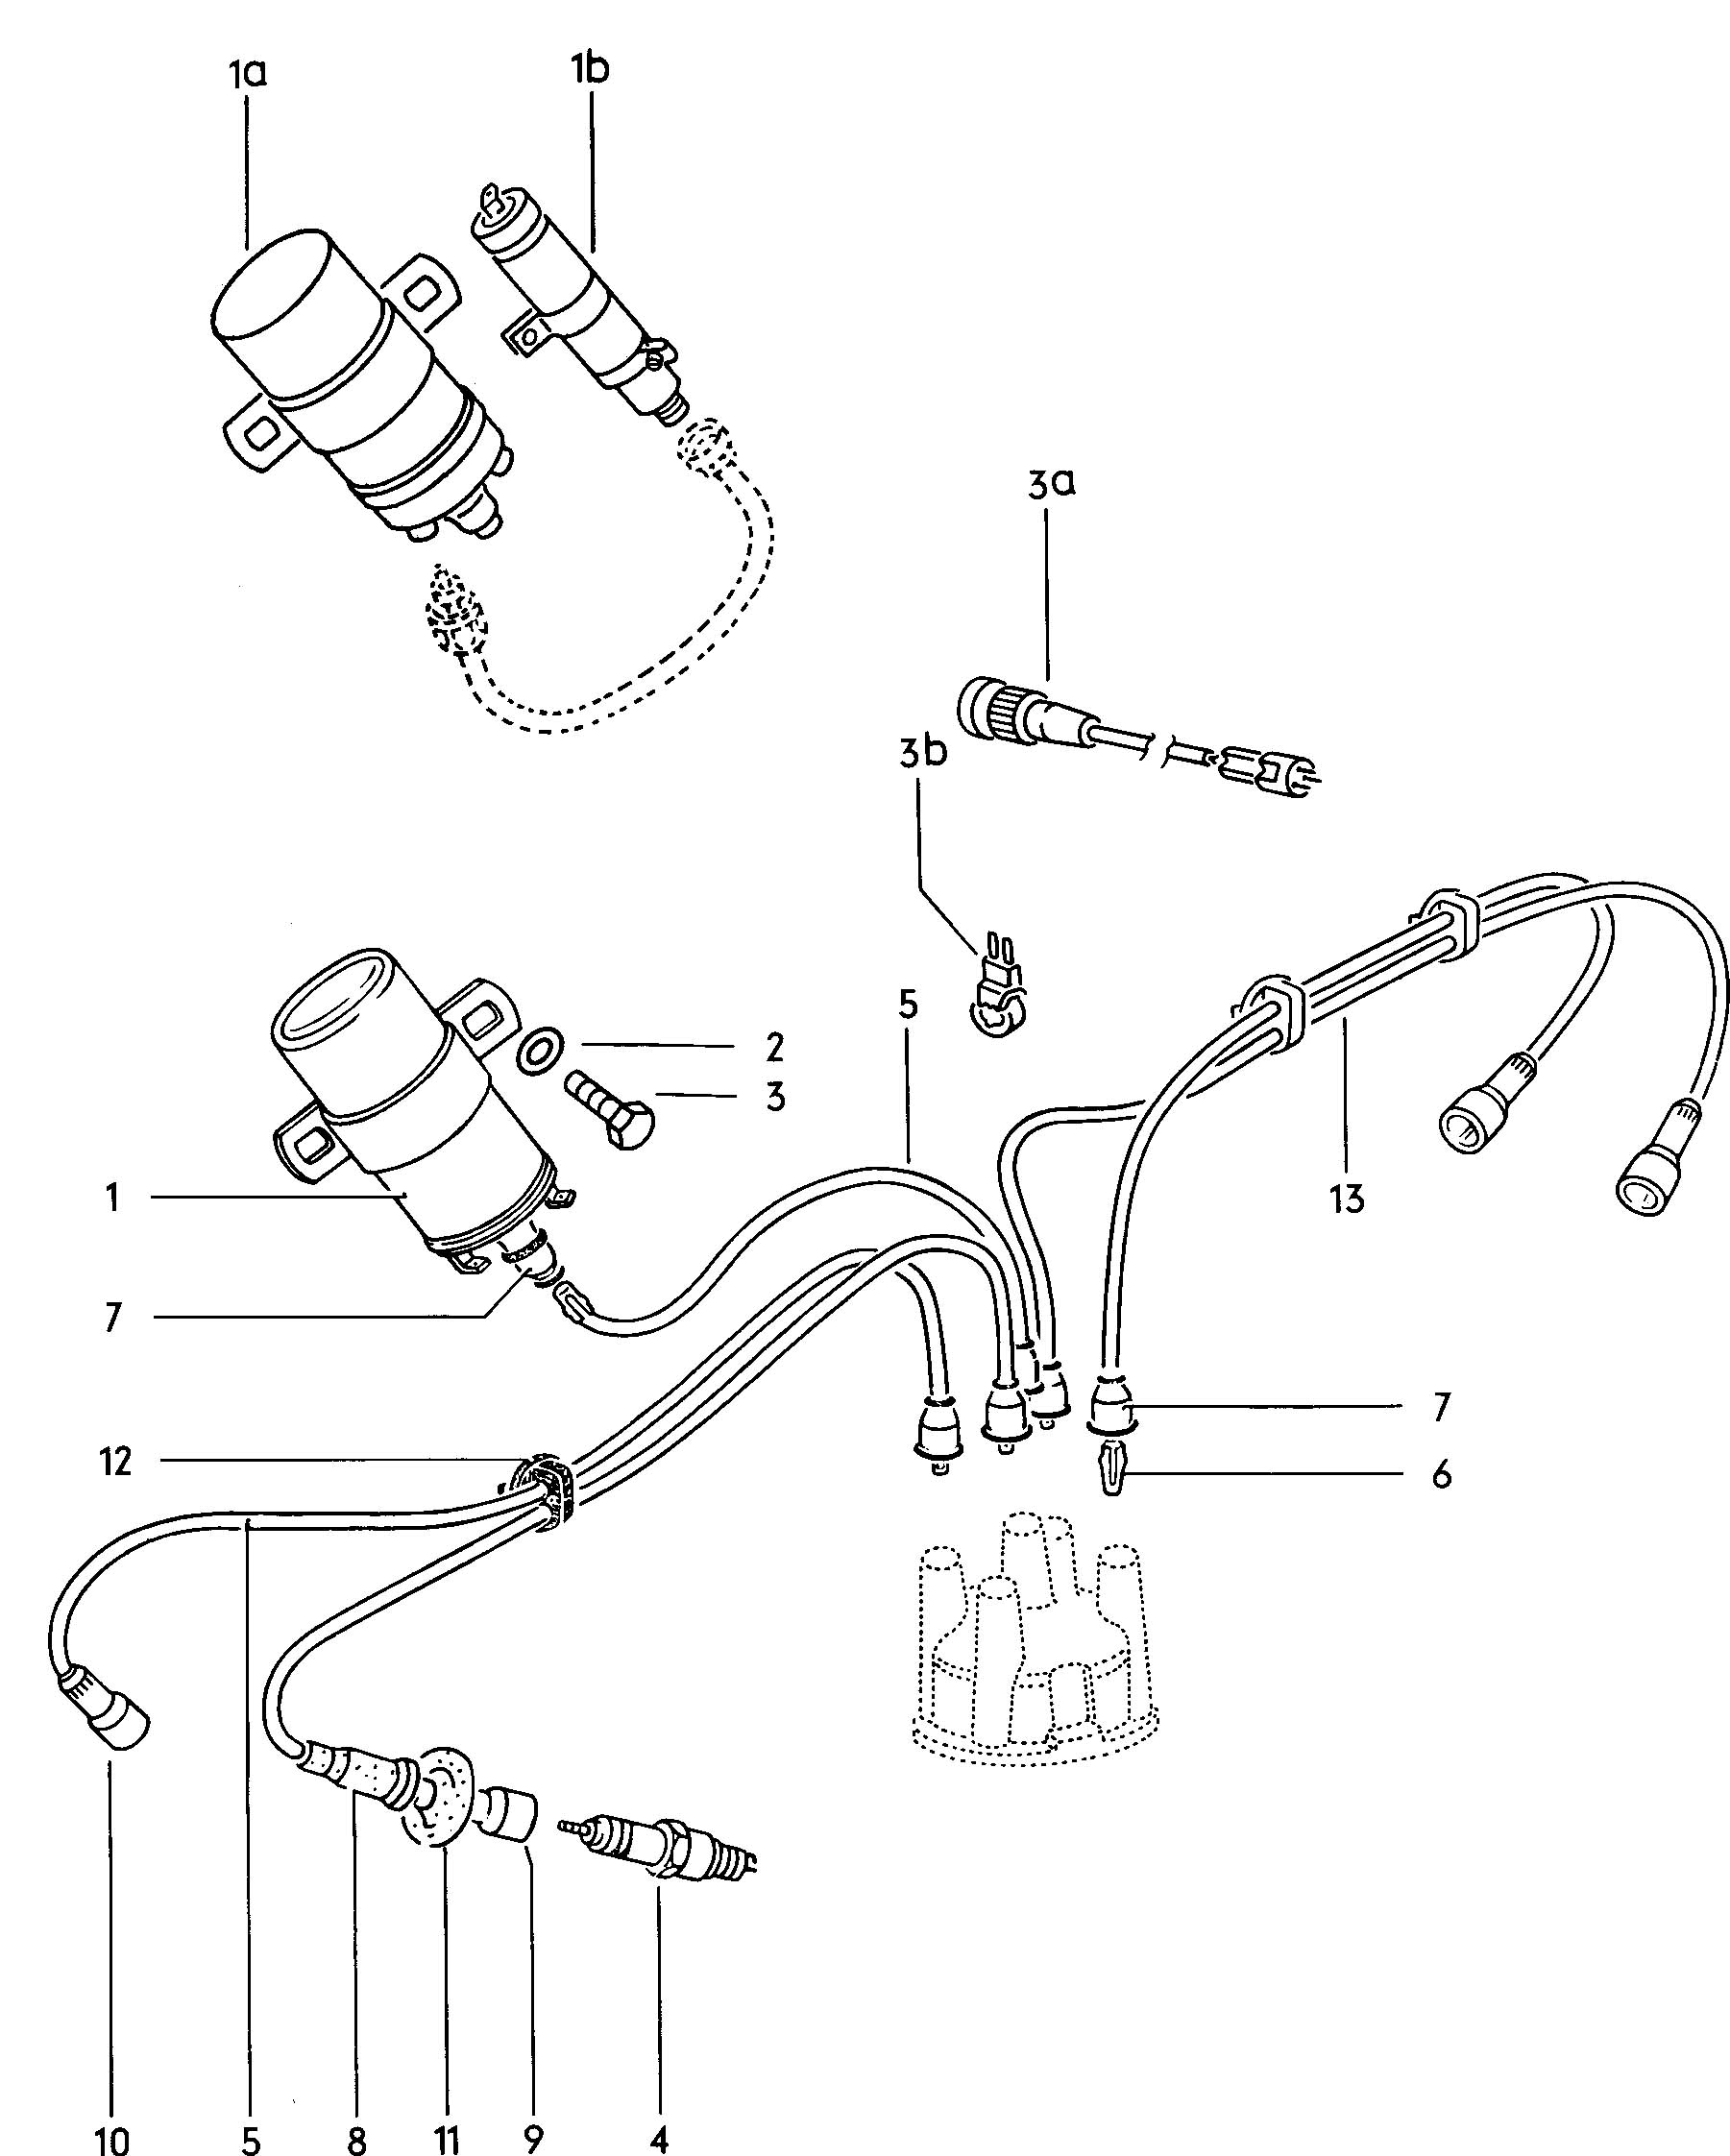 Vw Distributor Diagram Getting Ready With Wiring For Air Cooled 1600 Ignition Coil Get Free Image 1972 Beetle